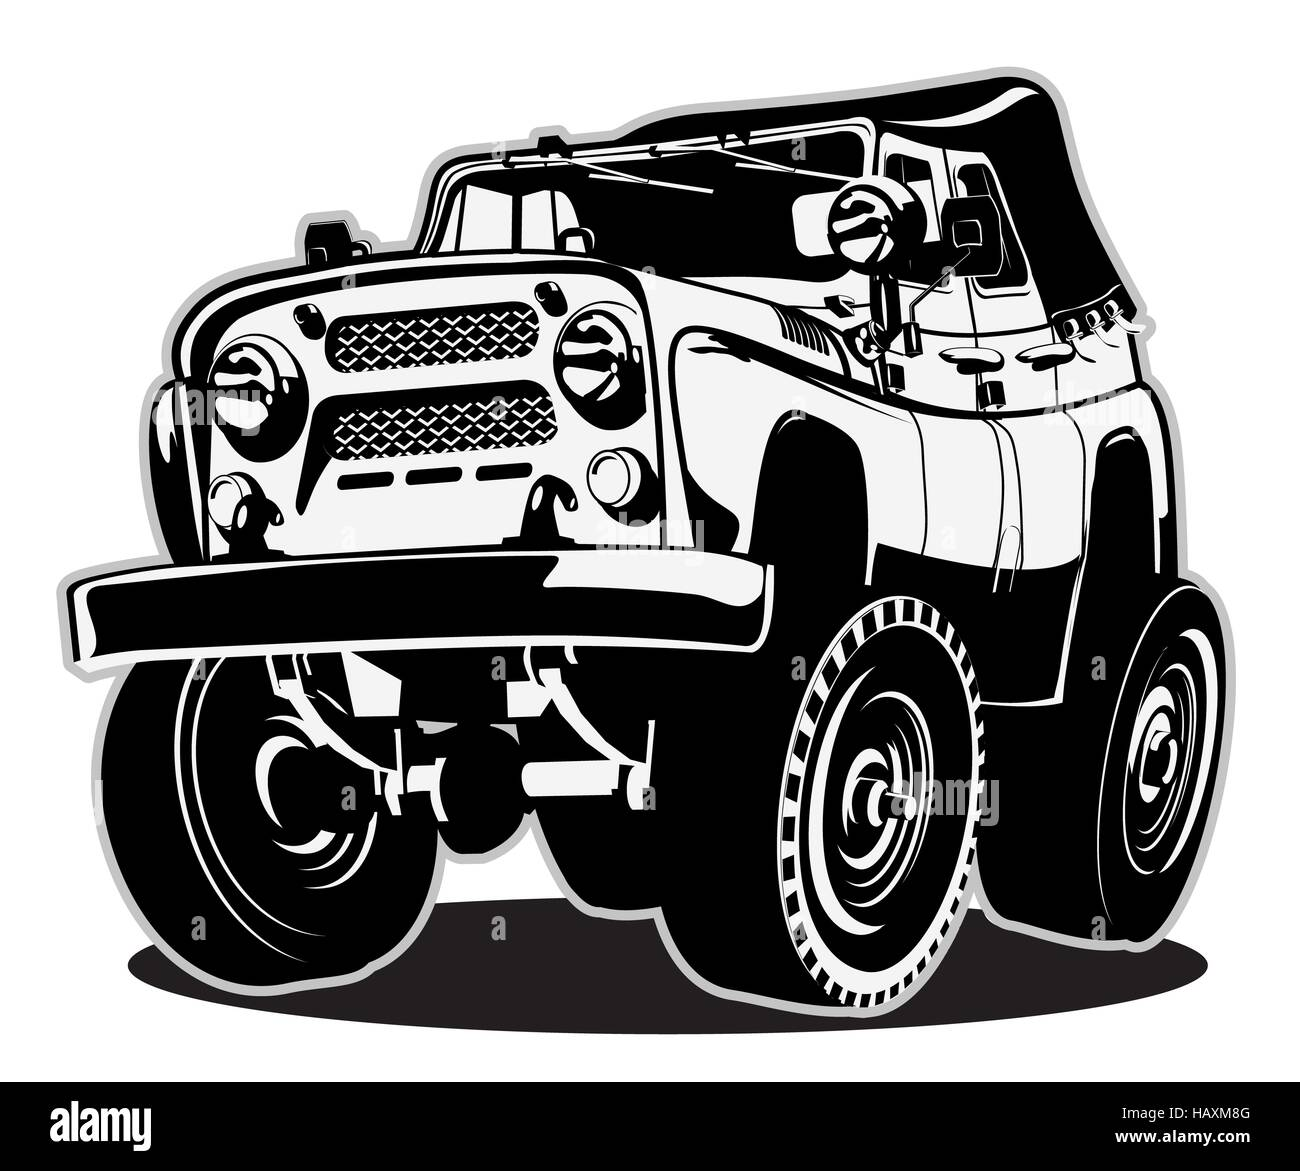 Cartoon Jeep Safari Stock Photos & Cartoon Jeep Safari